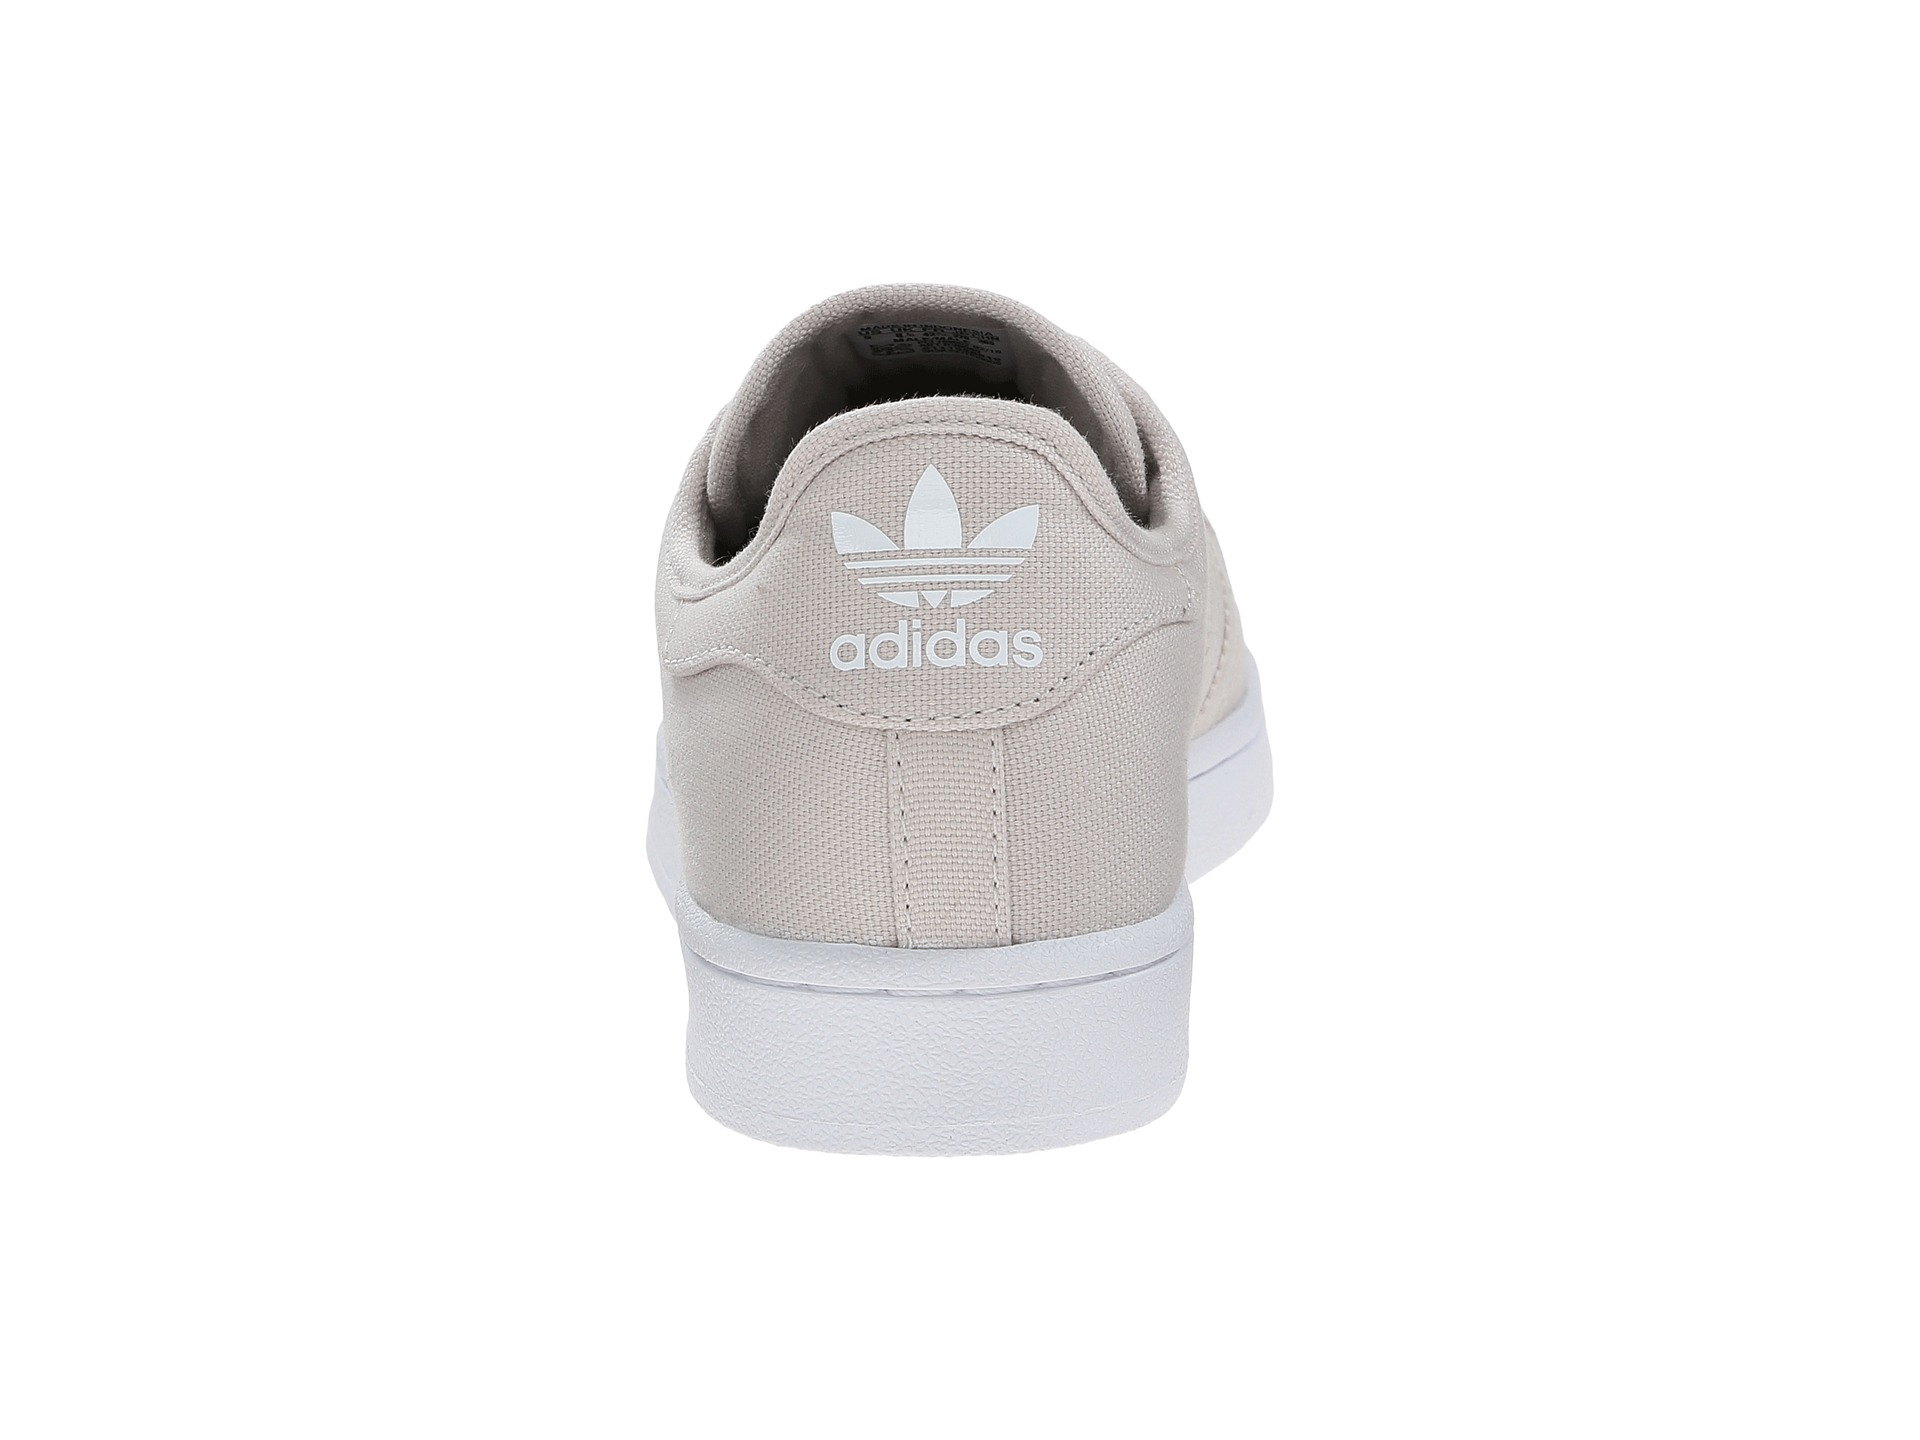 adidas Originals Superstar Festival at 6pm.com